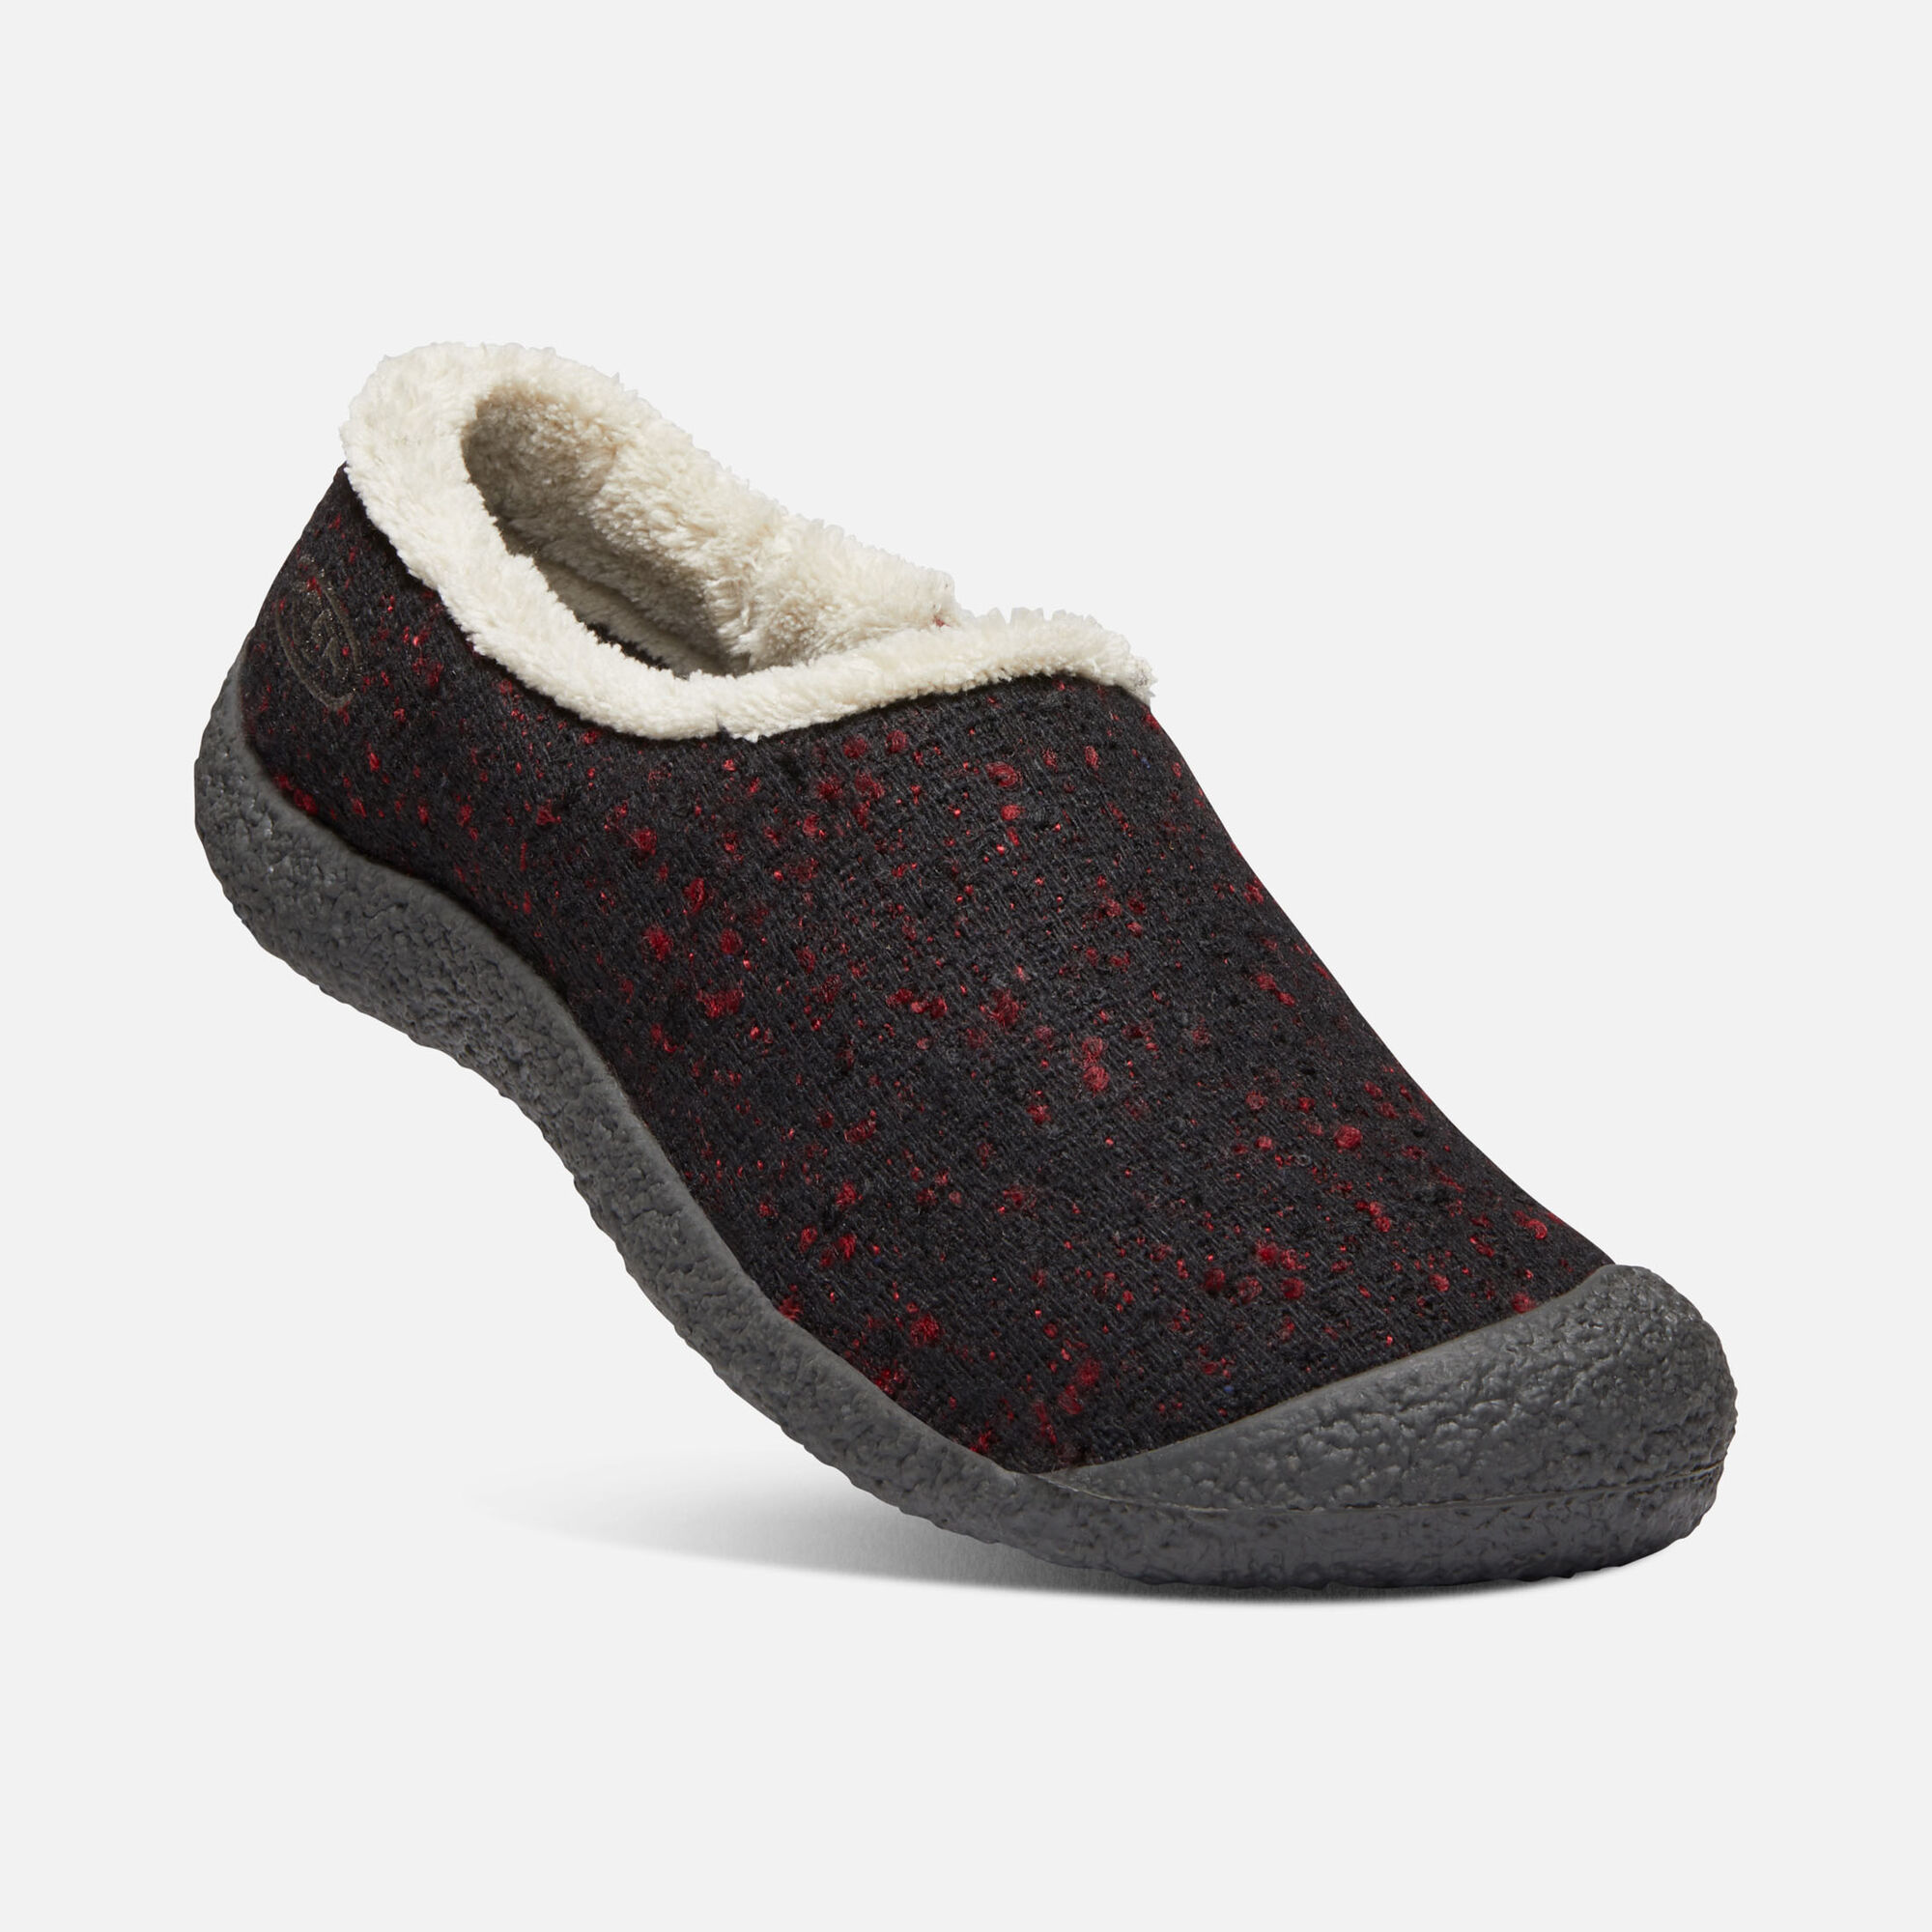 bb283935fba1 Women s Howser Wool Slide in FIRED BRICK RAVEN - small view.